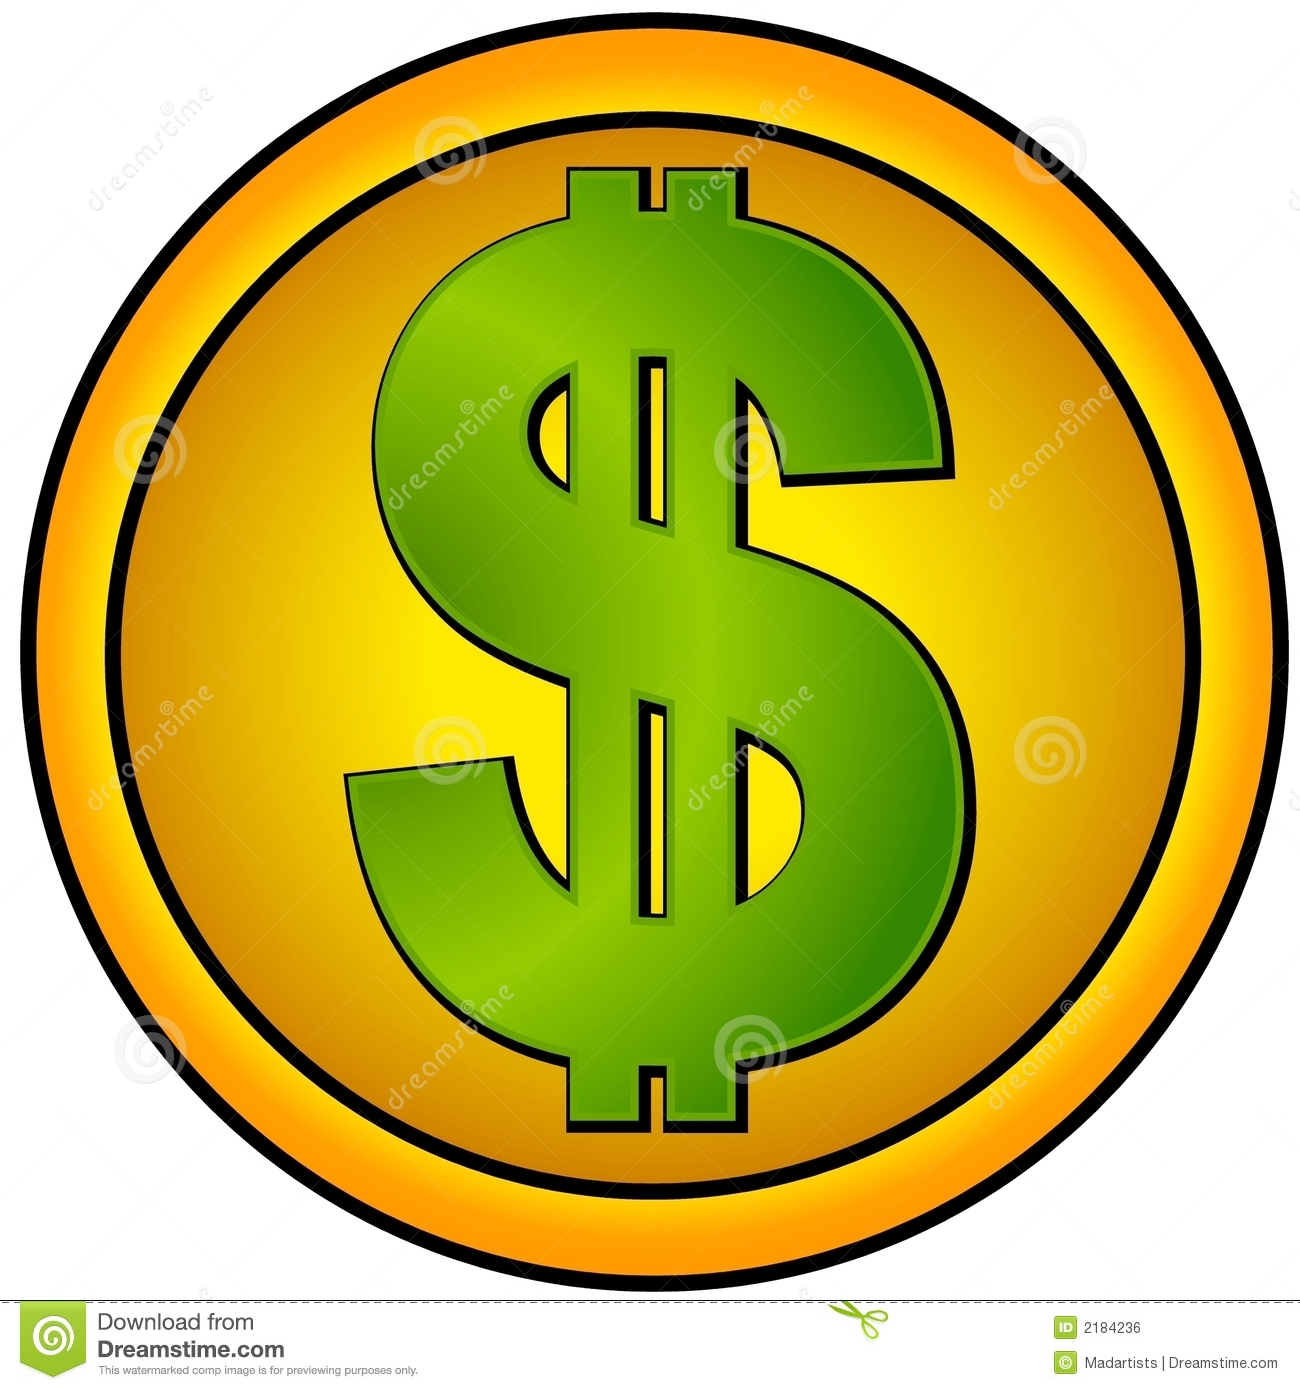 Gold Dollar Sign Clipart - Clipart Suggest